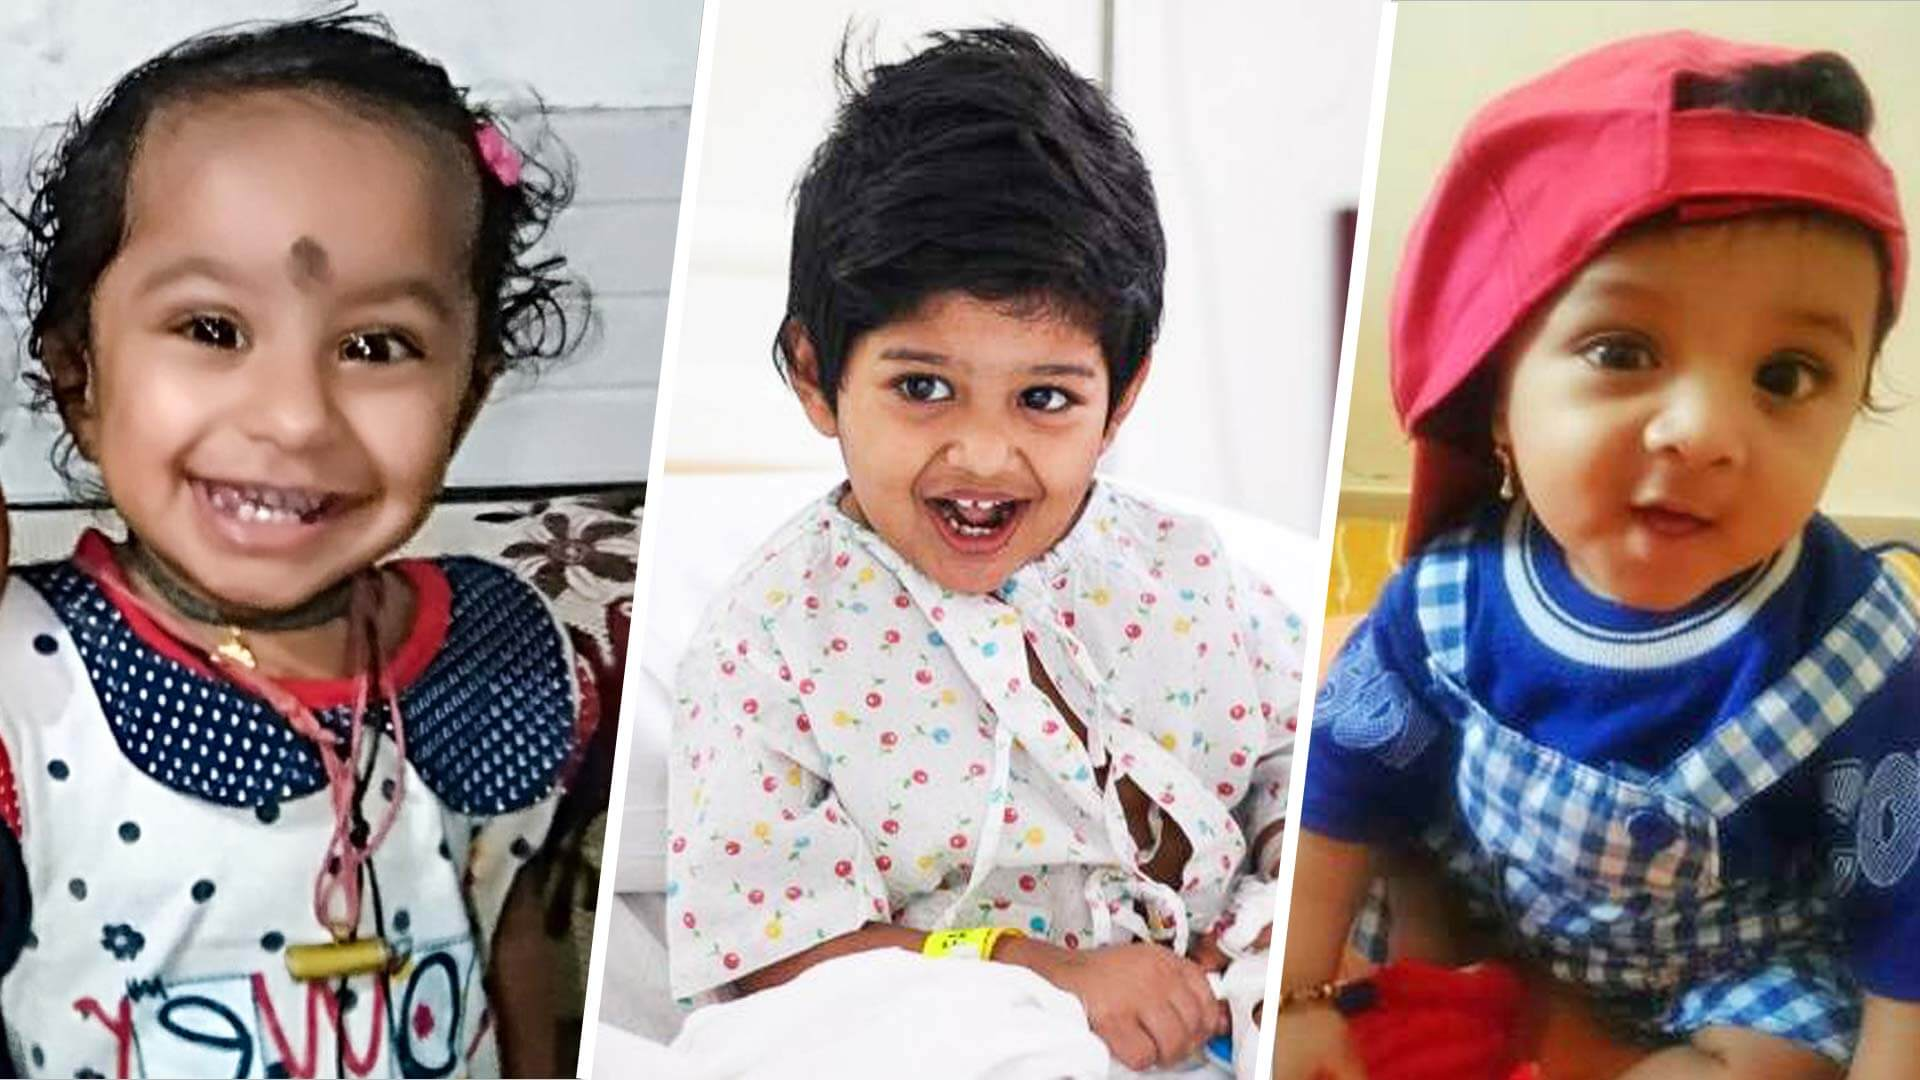 Children's Day 2018: How Crowdfunding Gave These Brave Children A Second Chance At Life